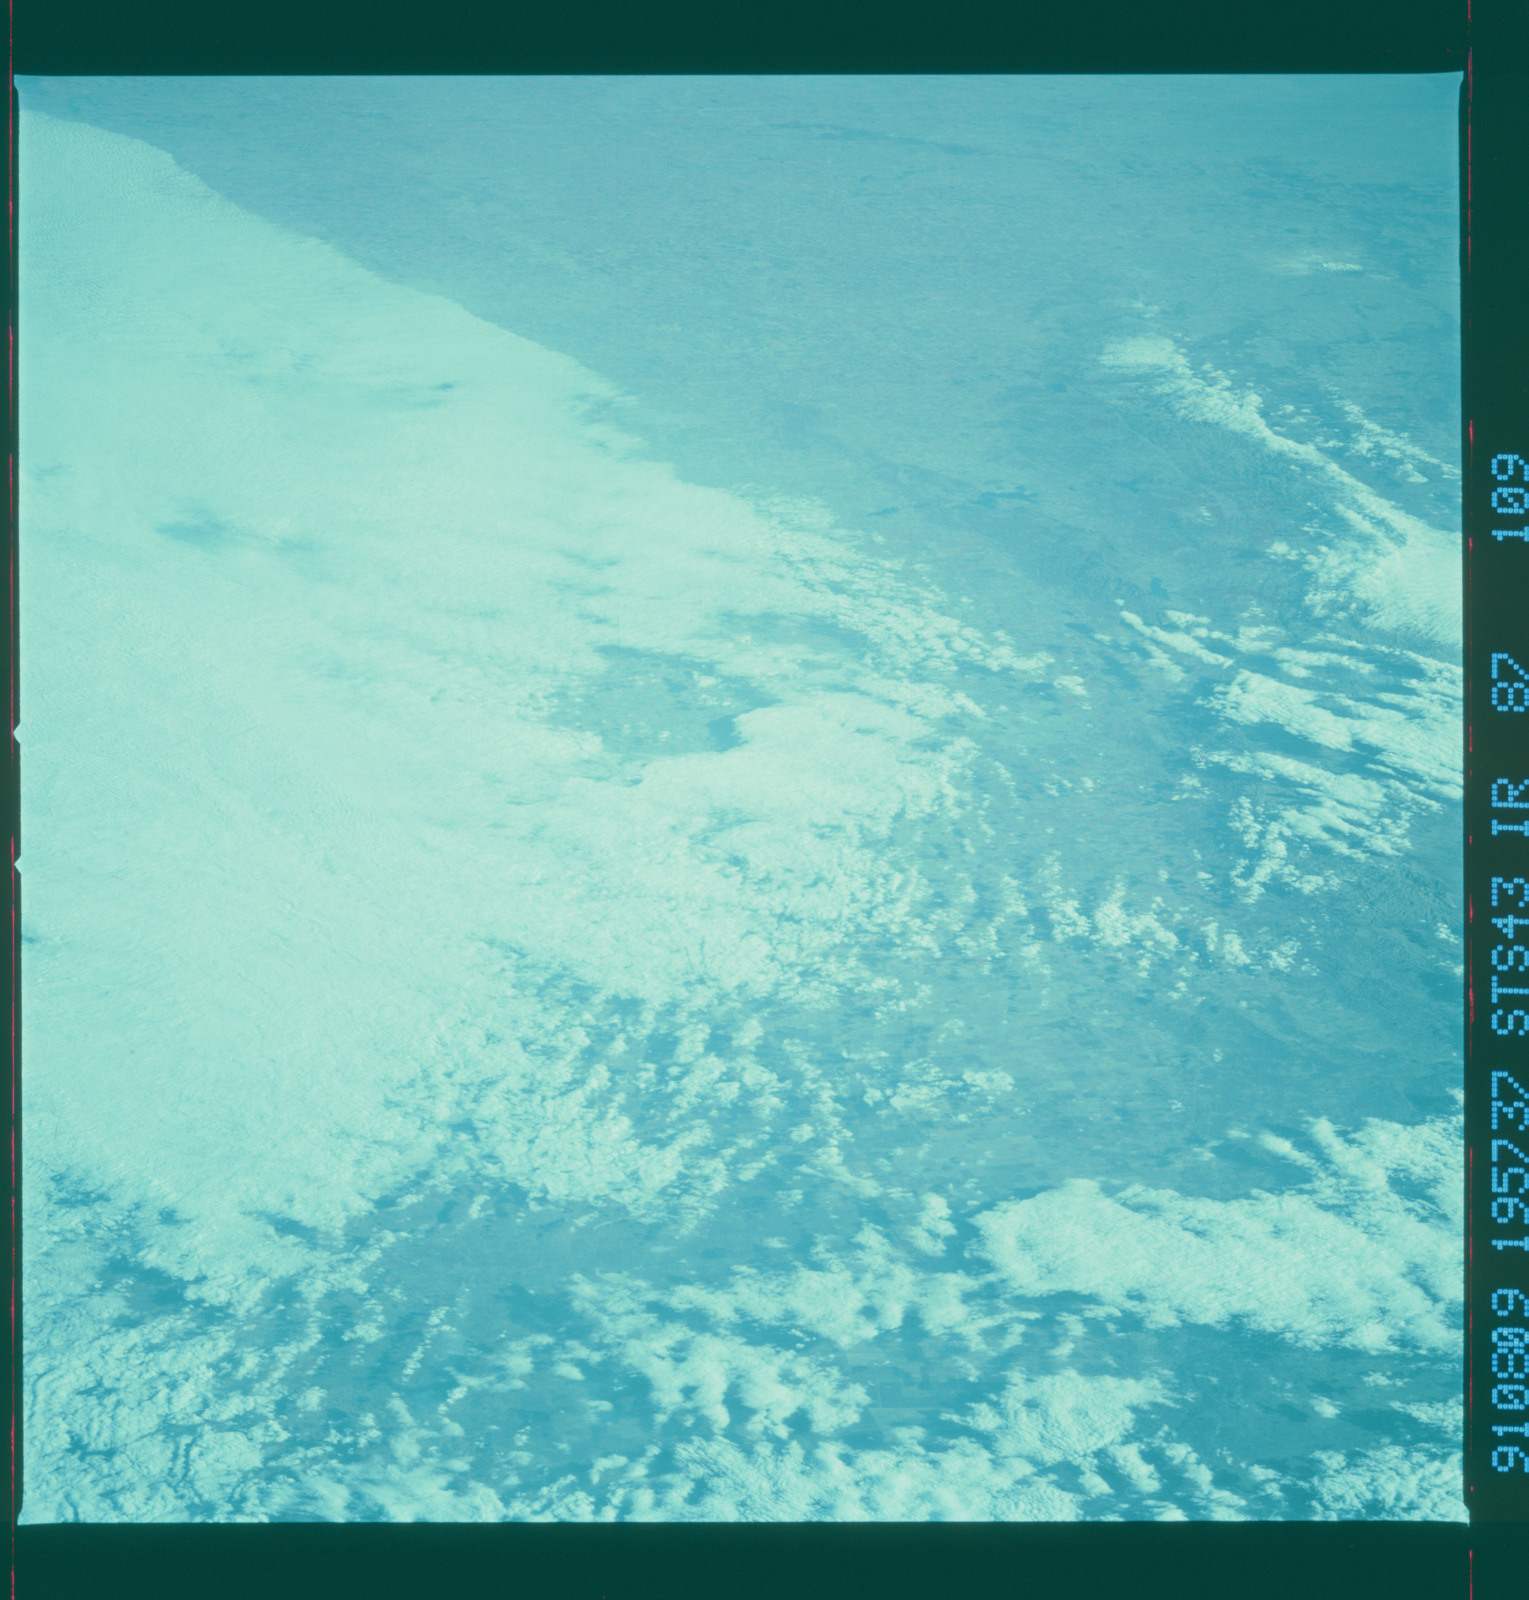 S43-87-109 - STS-043 - STS-43 earth observations